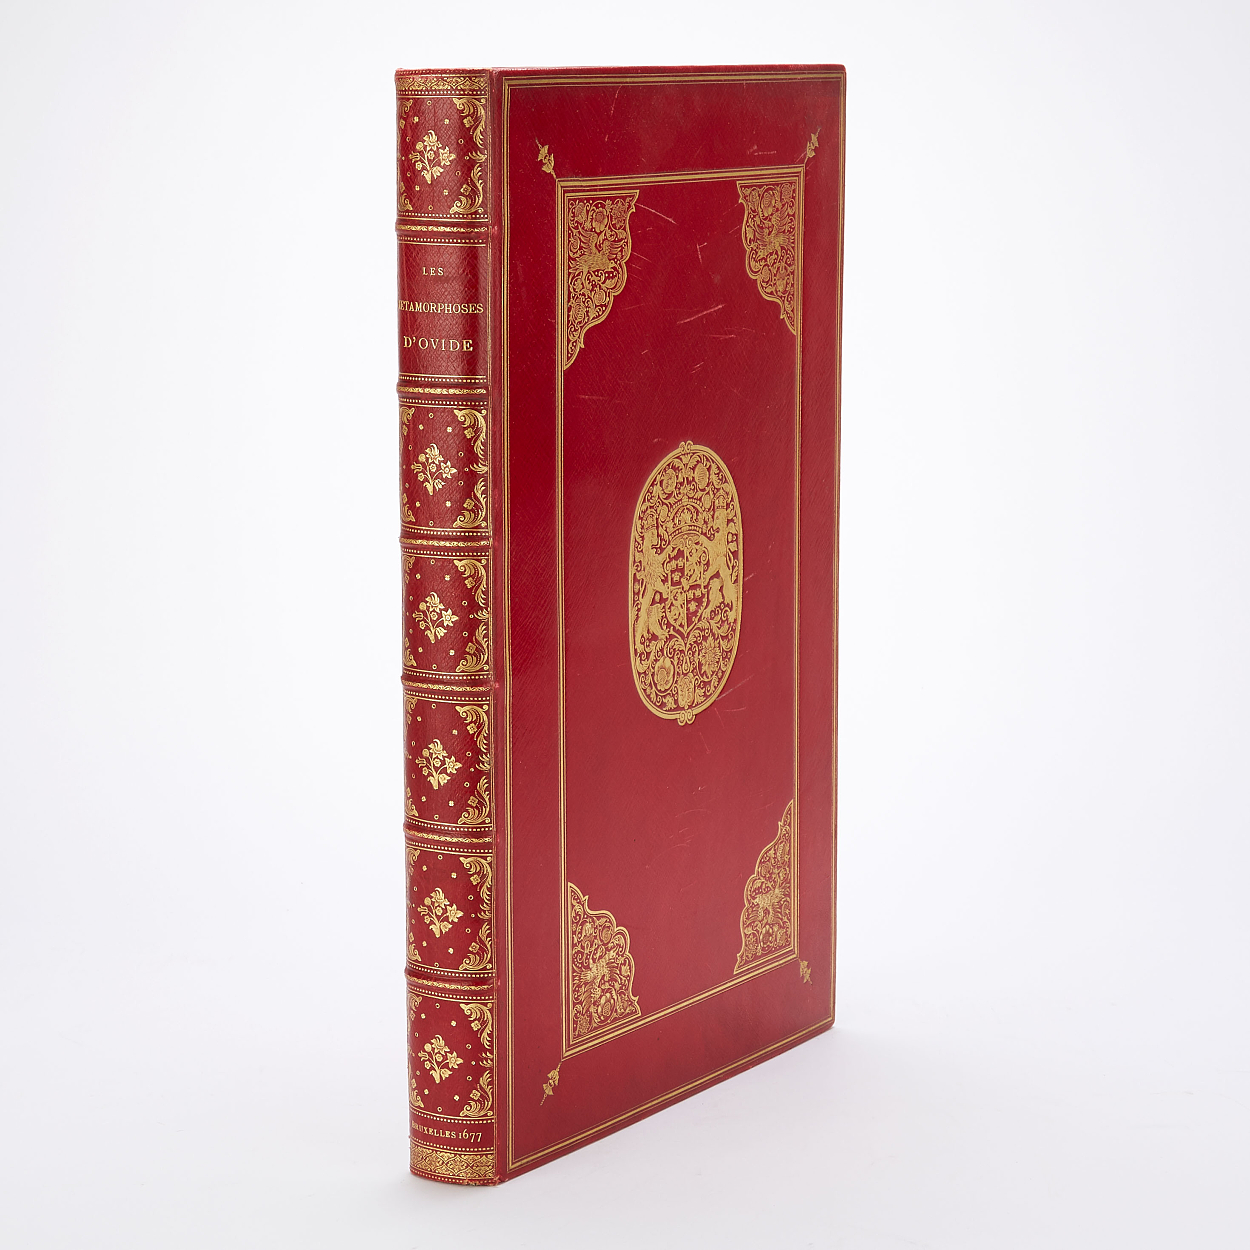 Ovidius' Les metamorphoses 1677 in red binding